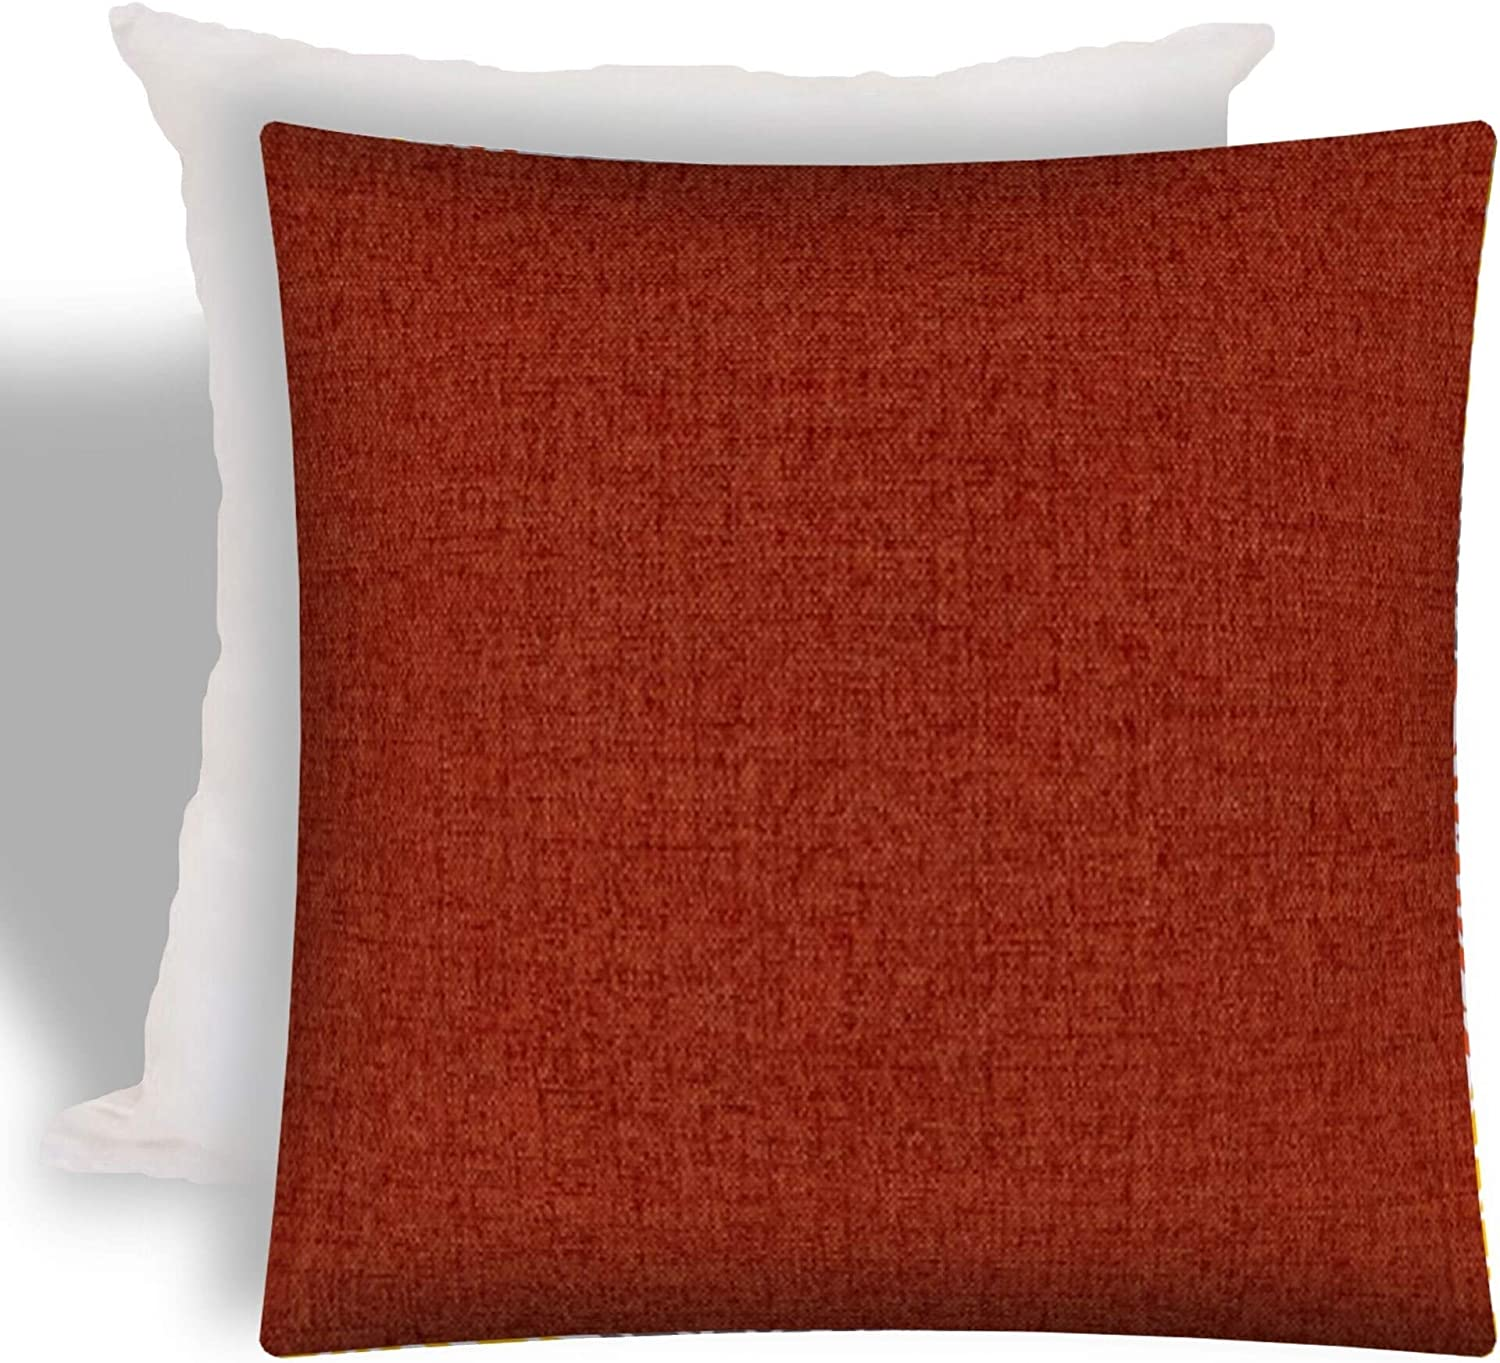 Joita Musk Polyester Outdoor Zippered i Cover Insert supreme Pillow Quality inspection with